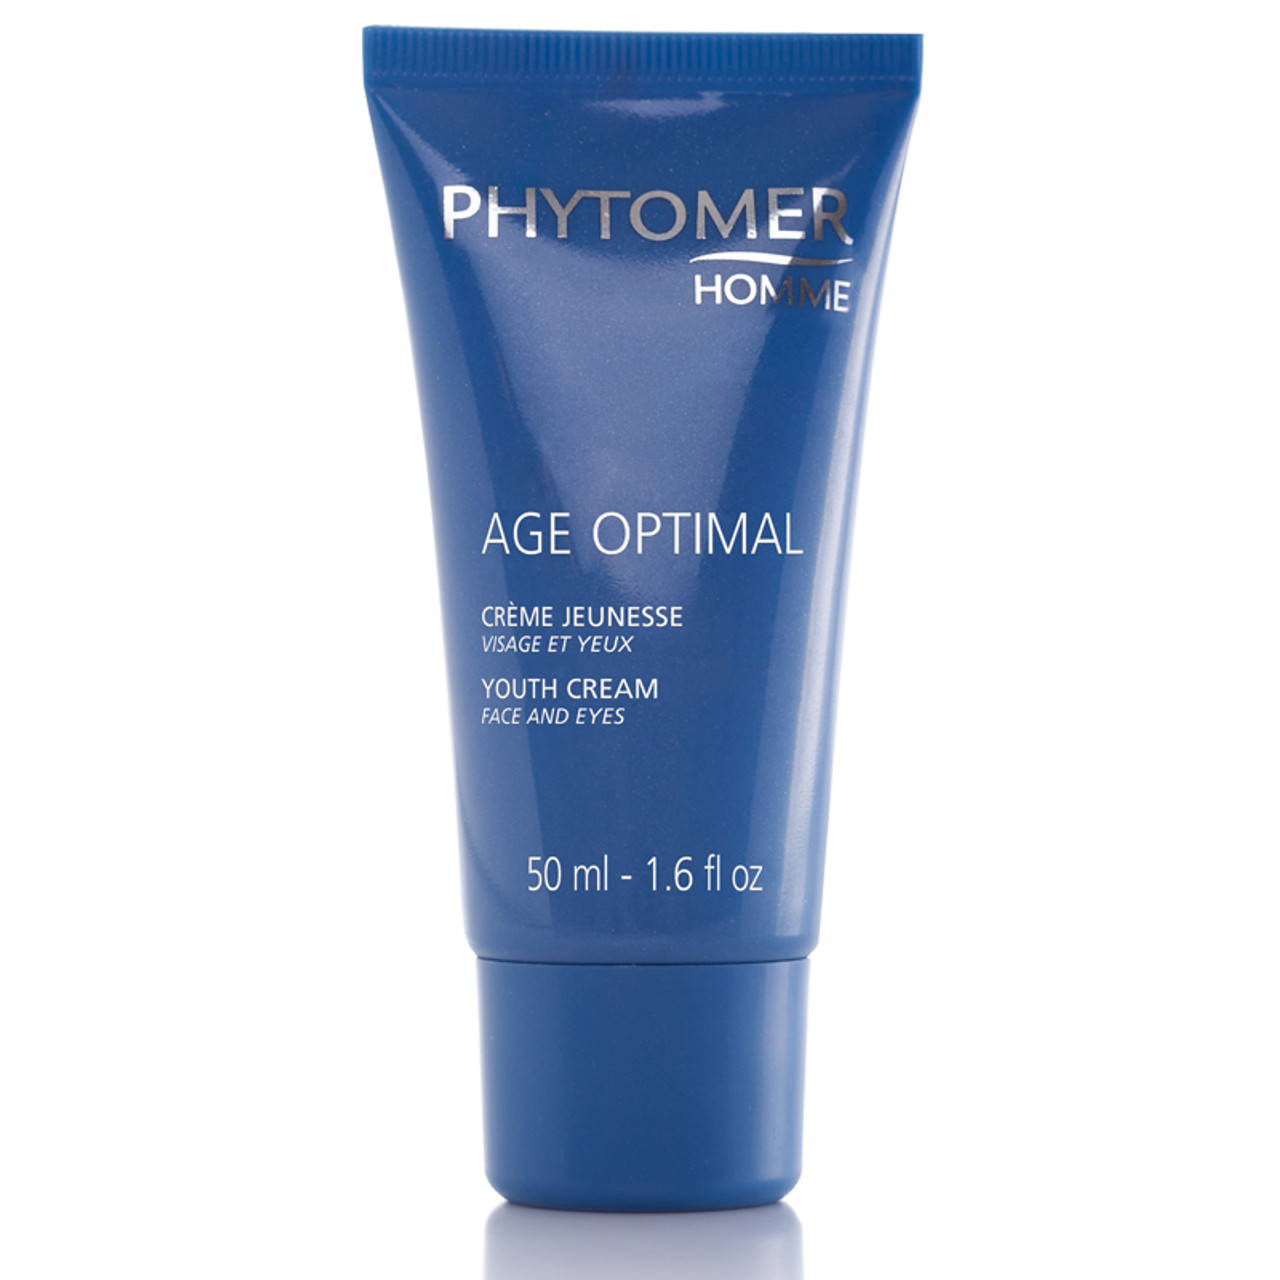 Phytomer Age Optimal Youth Cream Face And Eyes